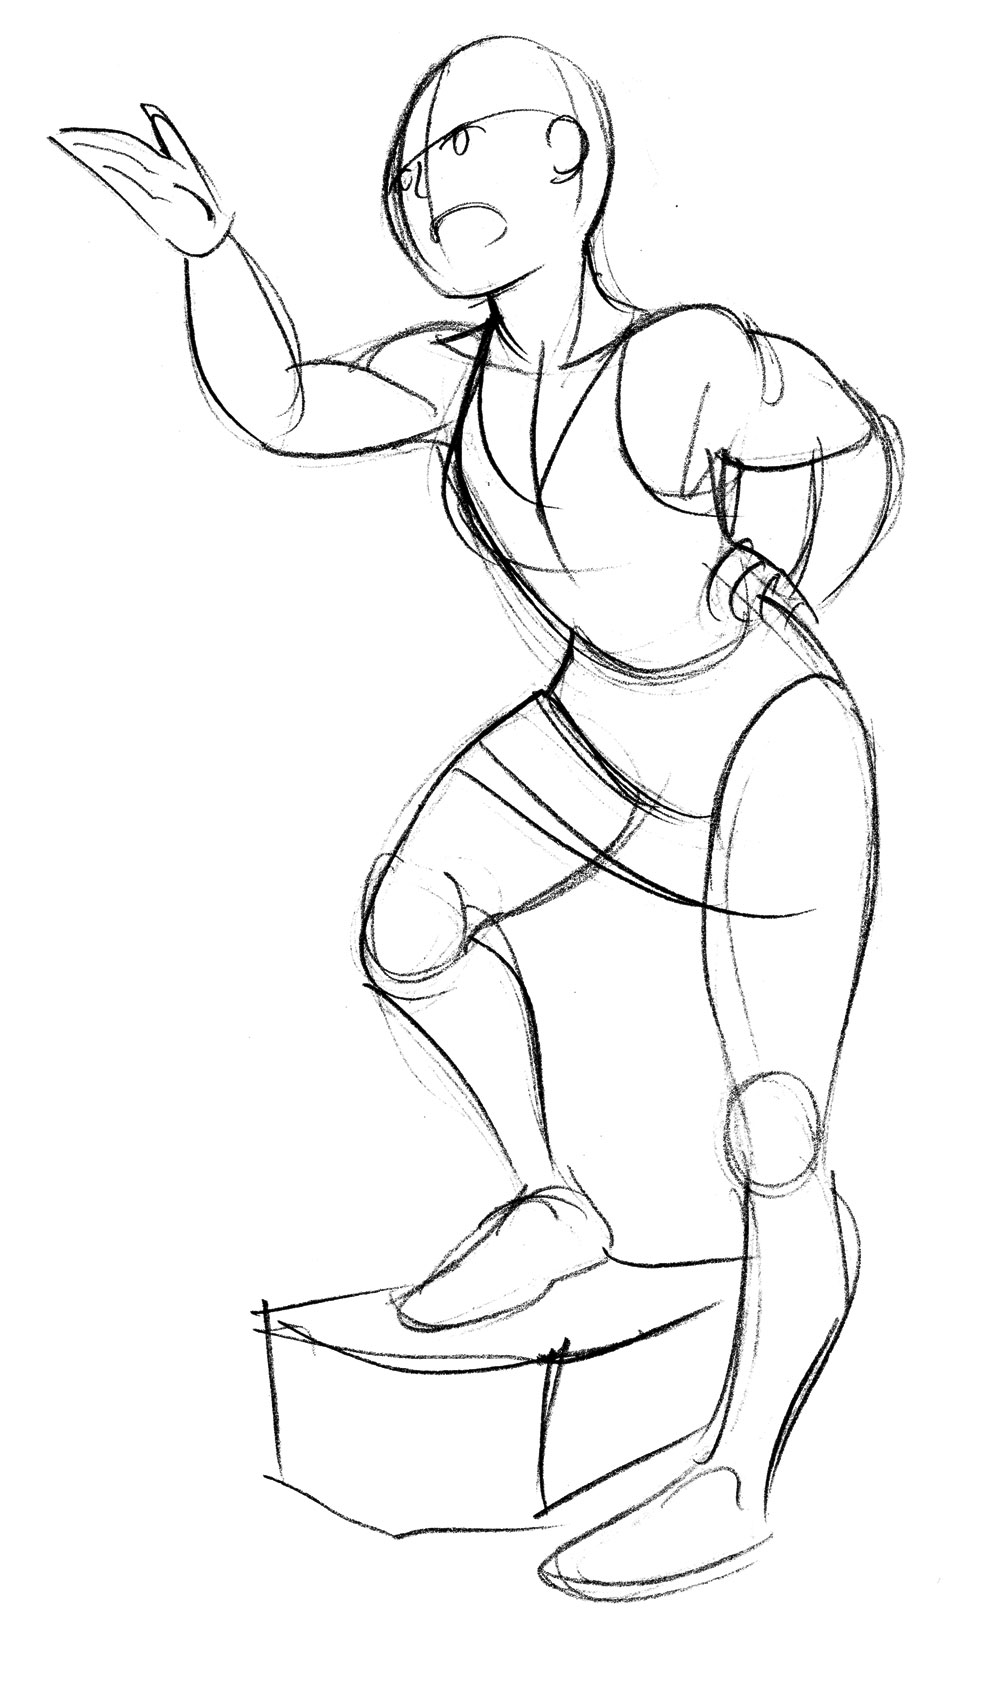 984x1684 Image Result For Hands On Hips Drawing Poses References